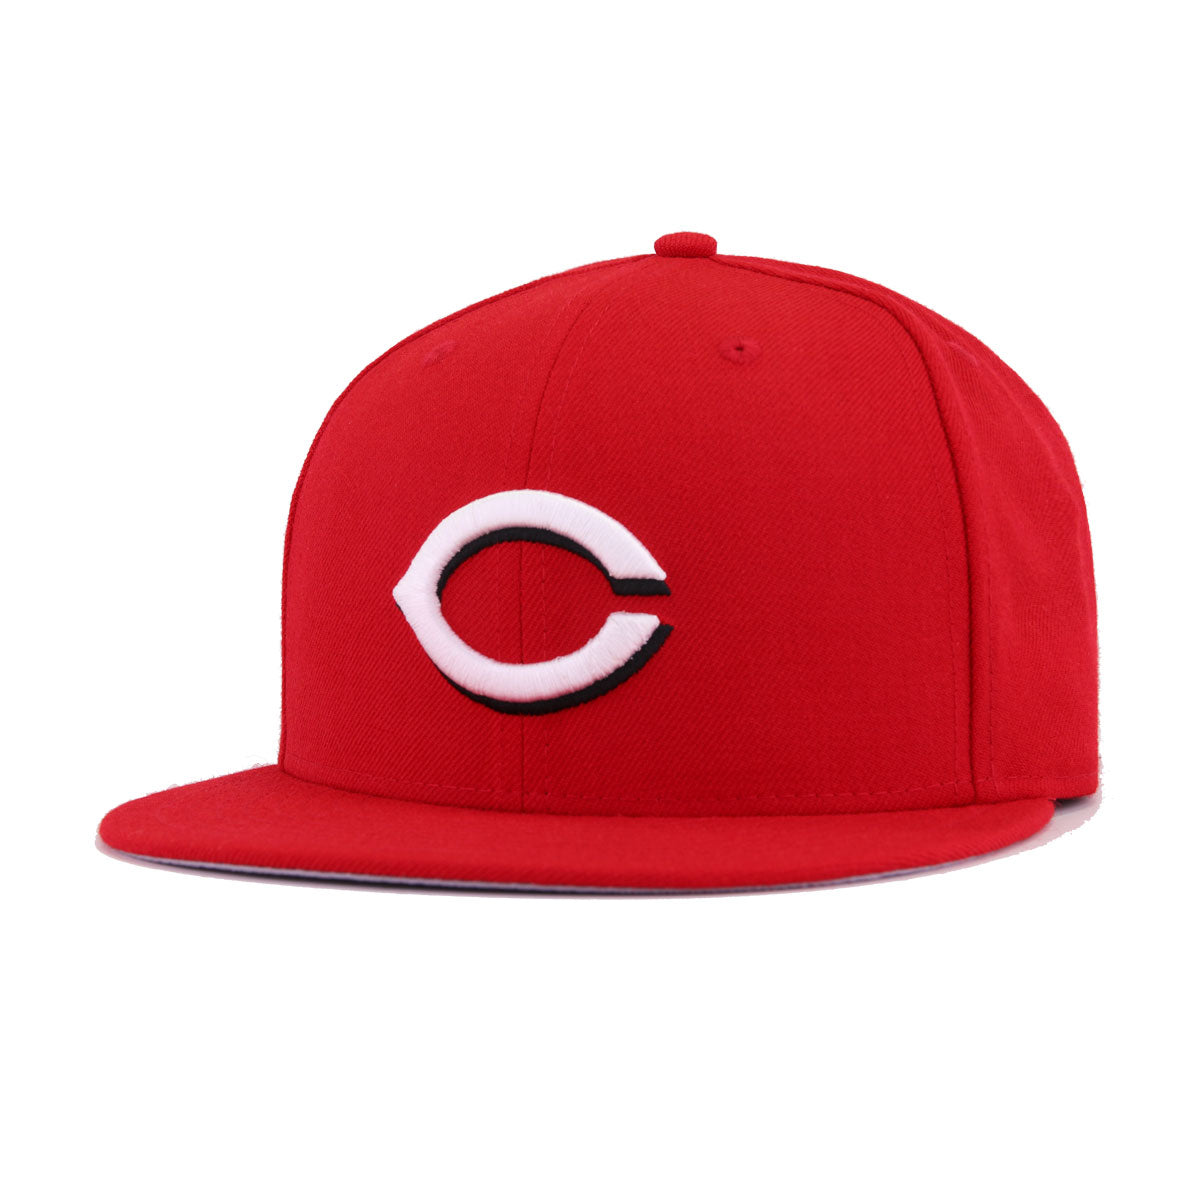 252bd3a7c440d Cincinnati Reds Scarlet White New Era 59Fifty Fitted